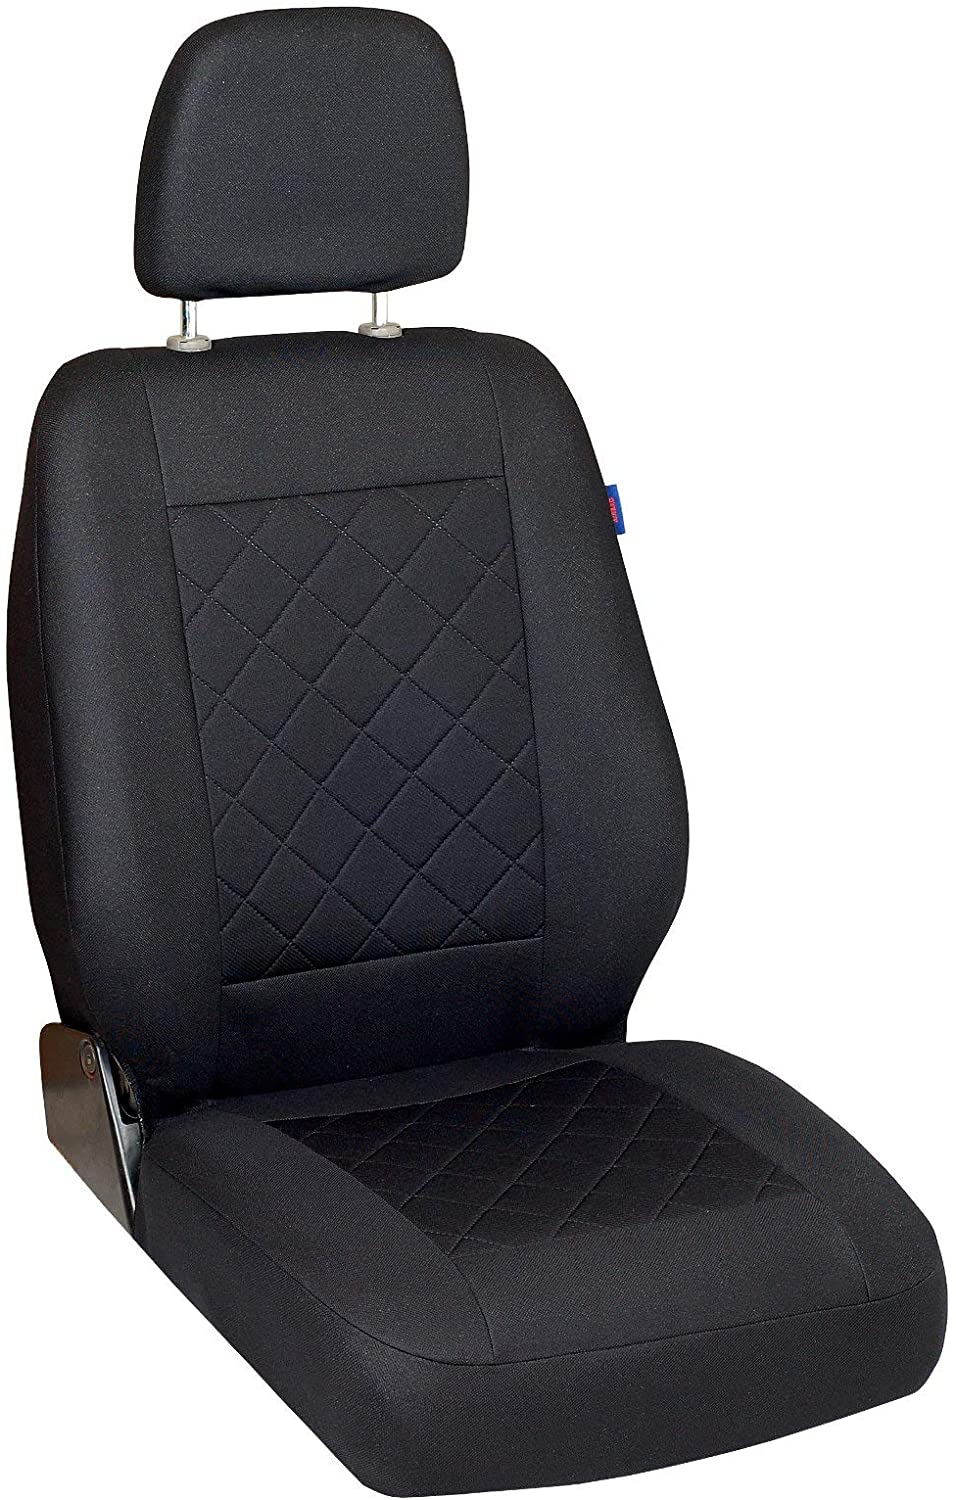 Zakschneider Car seat Cover for Mitsubishi Space Gear - Driver Seat - Color Premium Black Quilted Squares